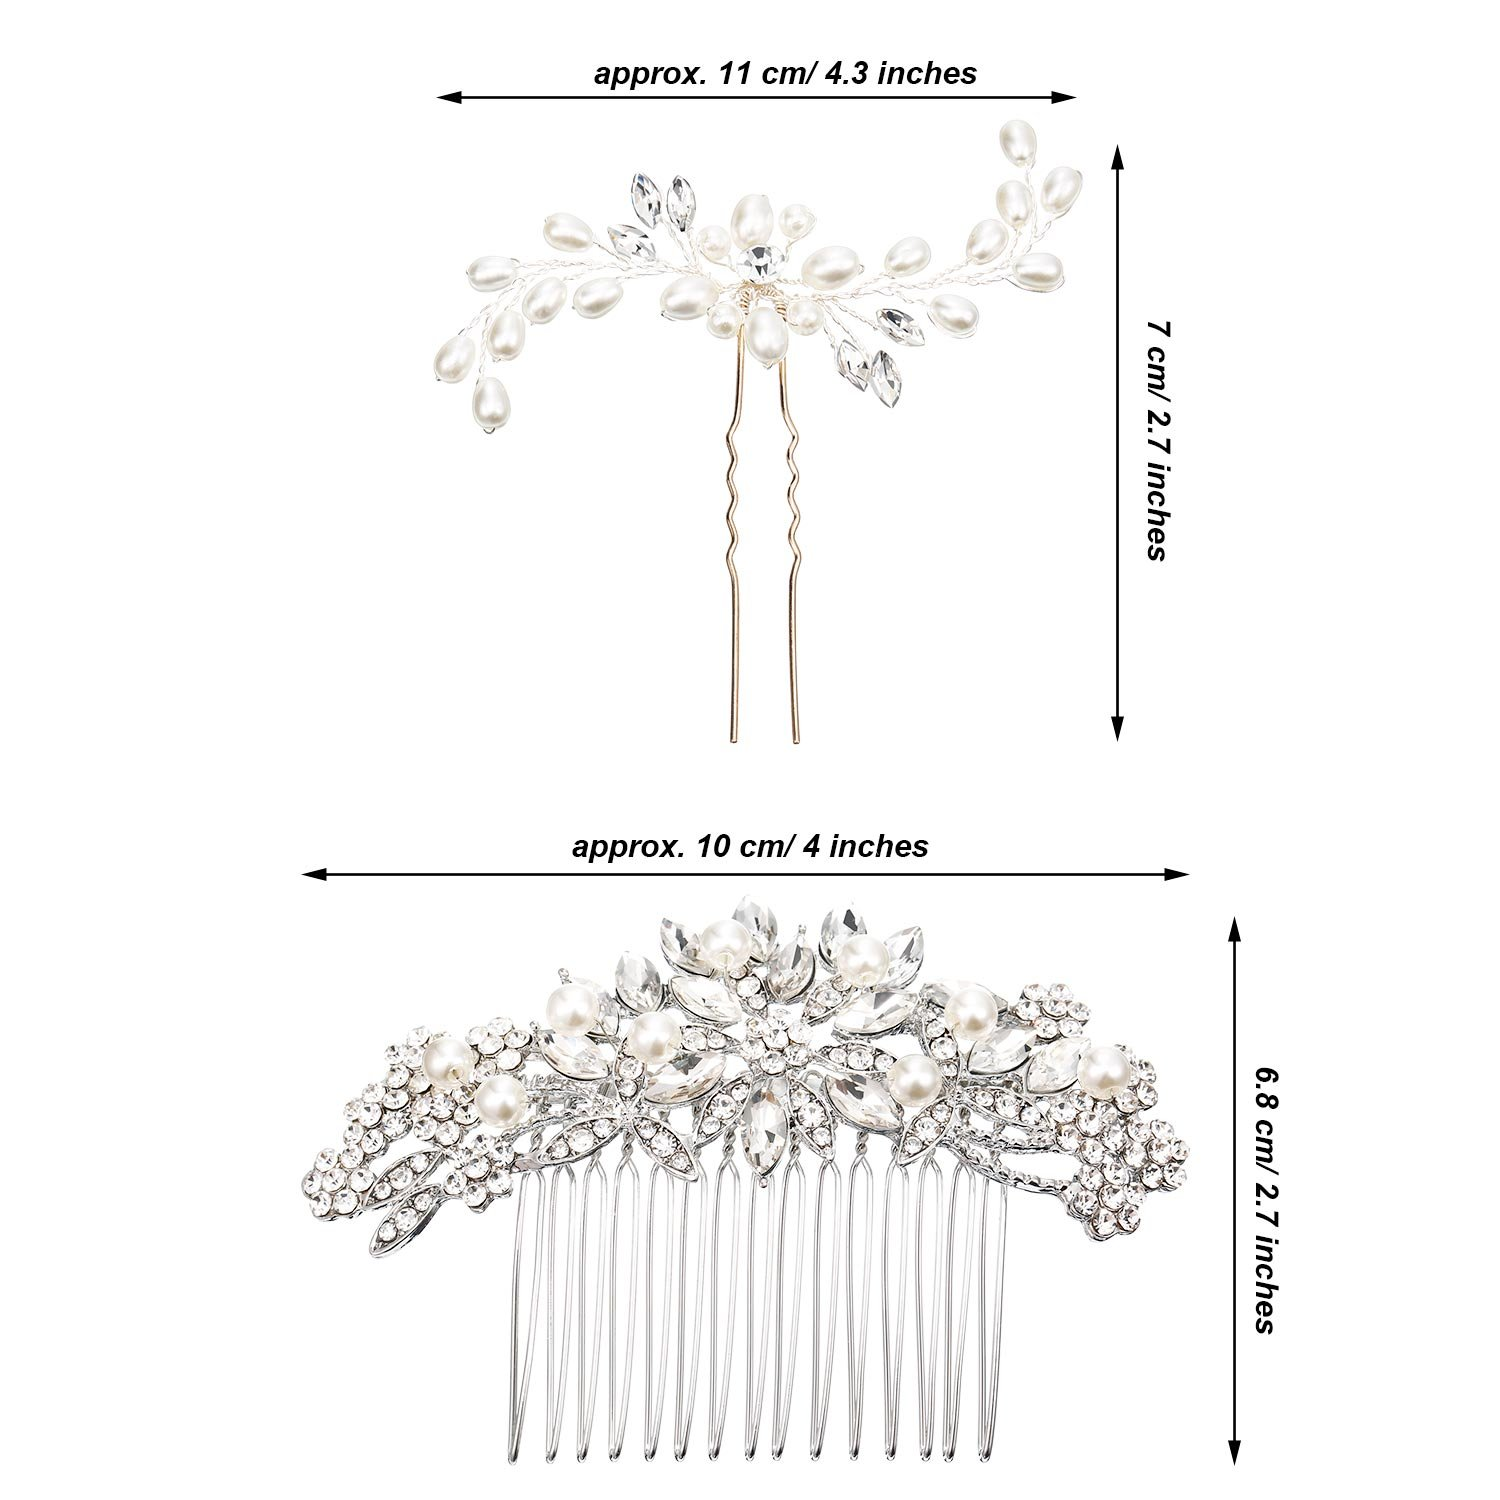 Gejoy 3 Pieces Elegant Wedding Crystal Hair Accessories, Leaves Flowers Hair Comb and 2 Pieces Rhinestone Bridal Hair Pins for Women, Bride or Bridesmaid by Gejoy (Image #7)